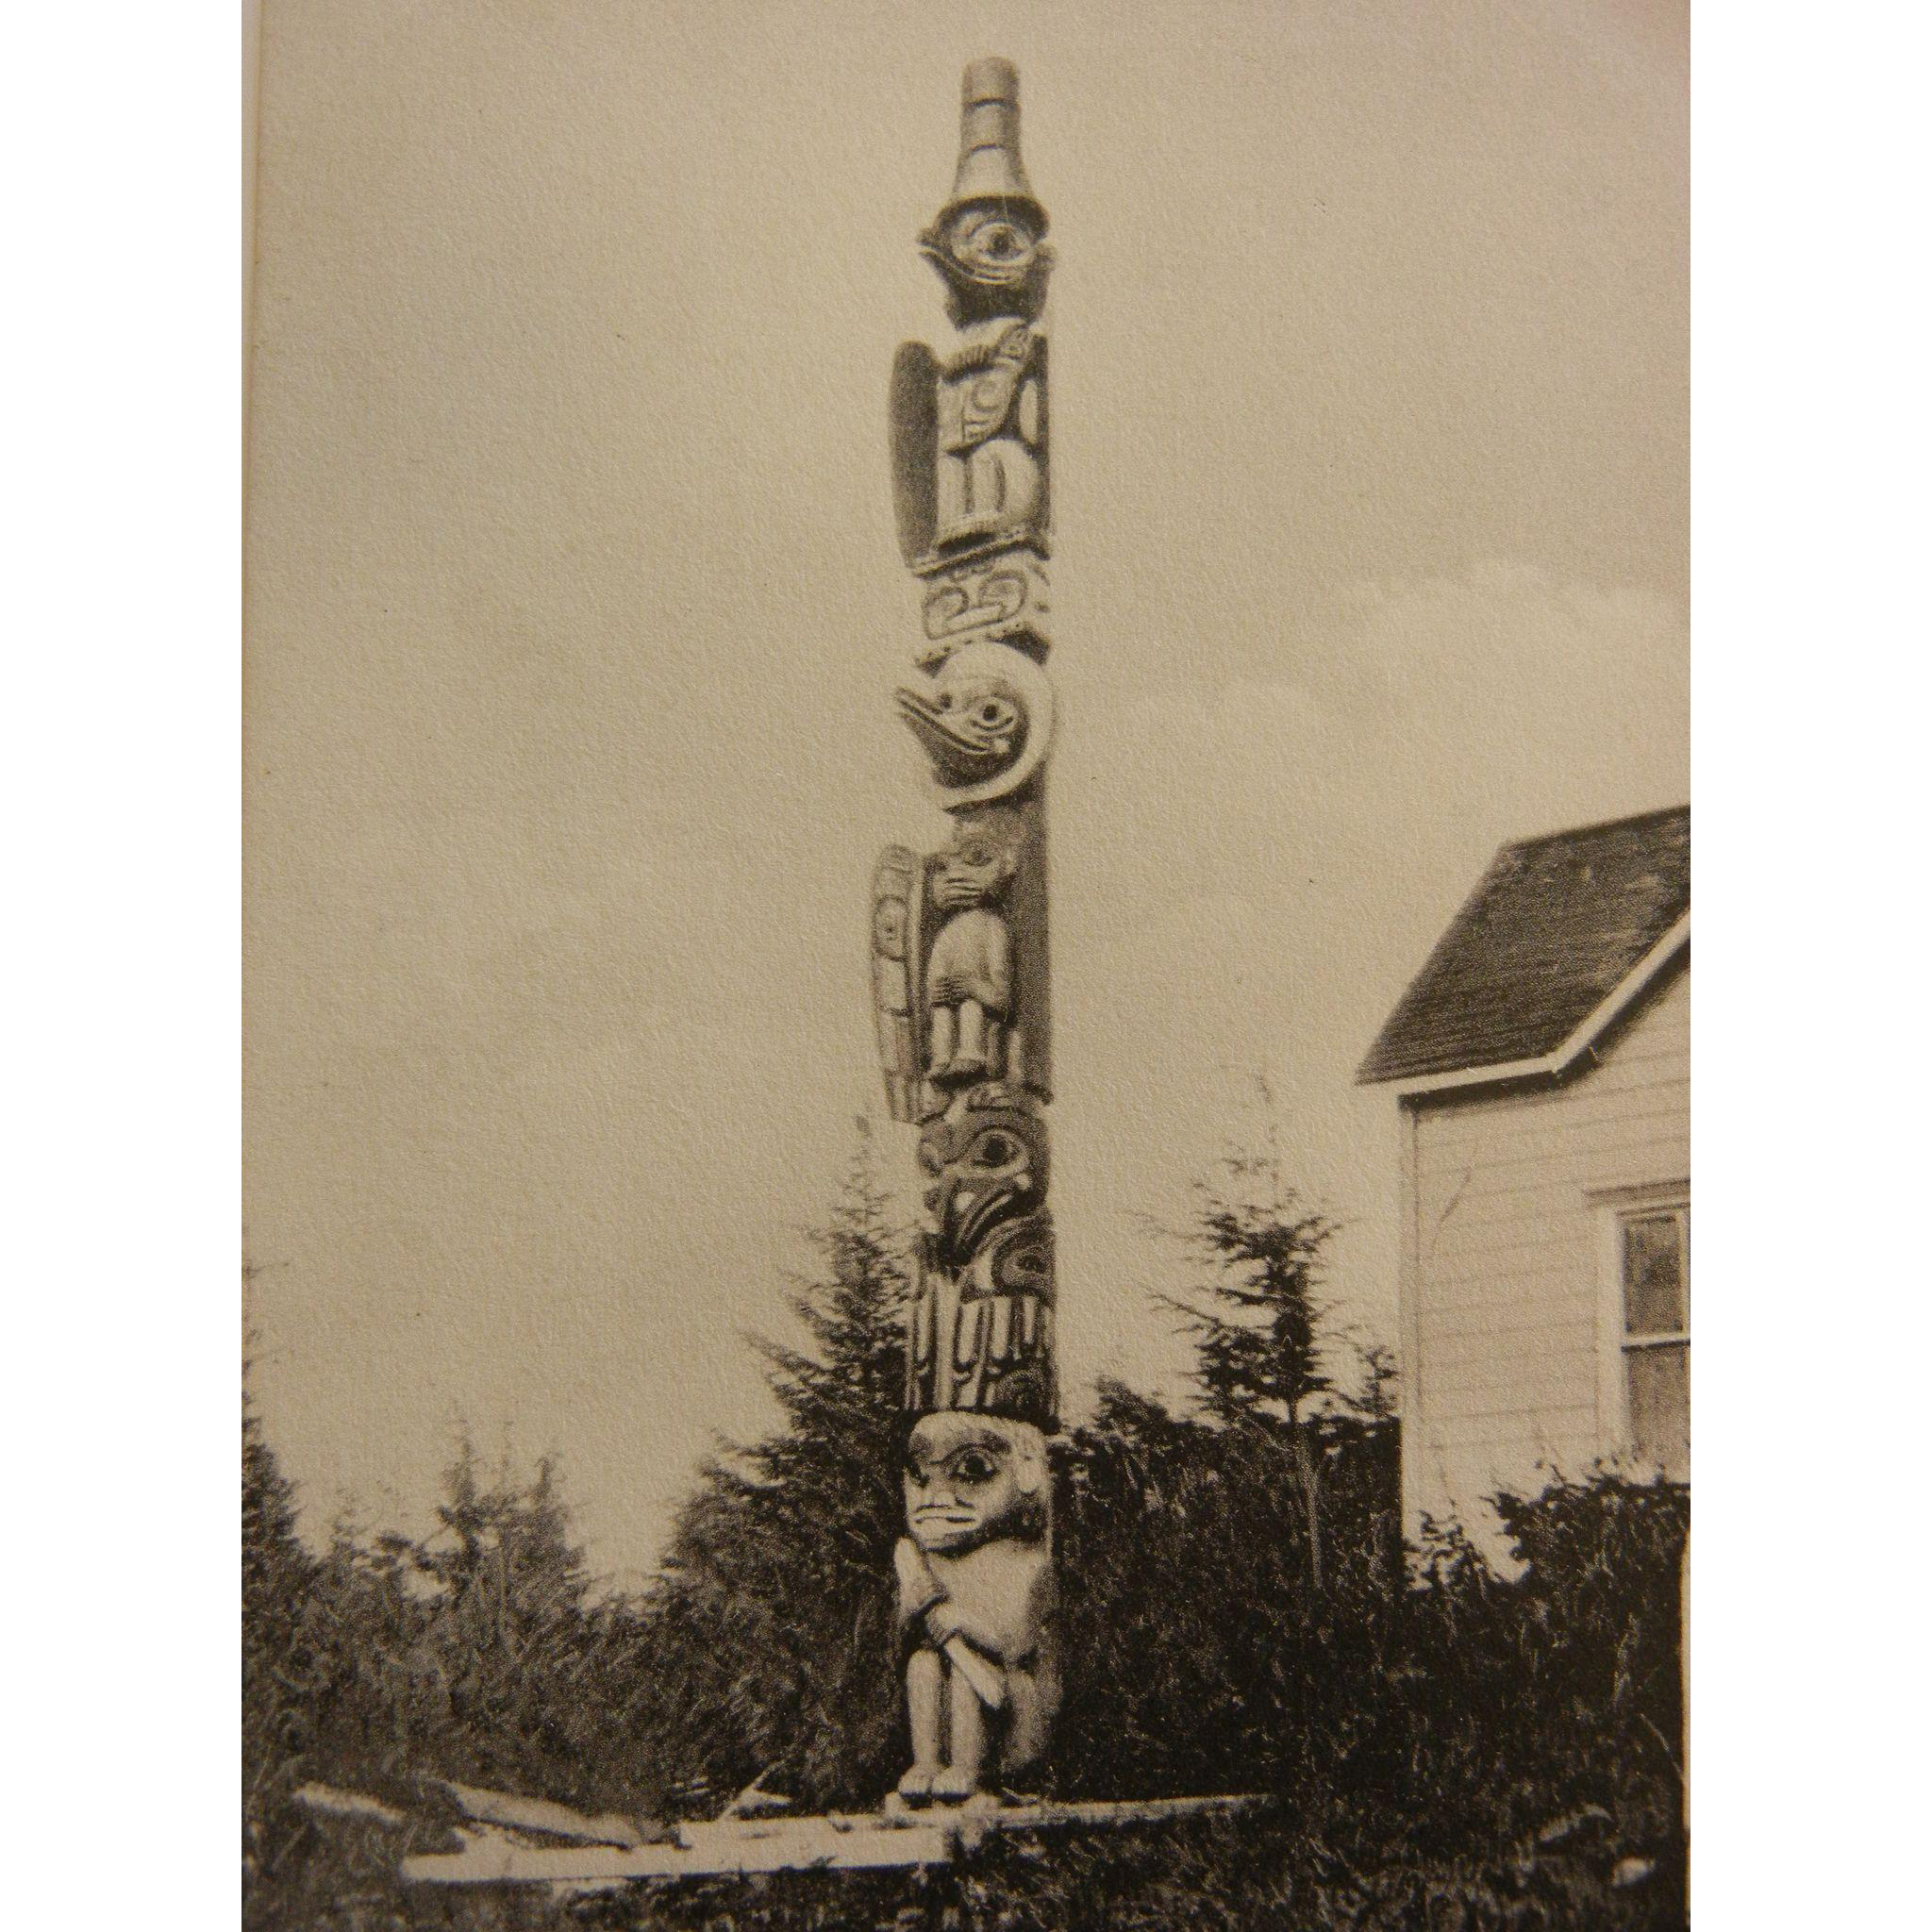 Vintage Original Photograph Postcard of Totem Pole at Wrangle, Alaska